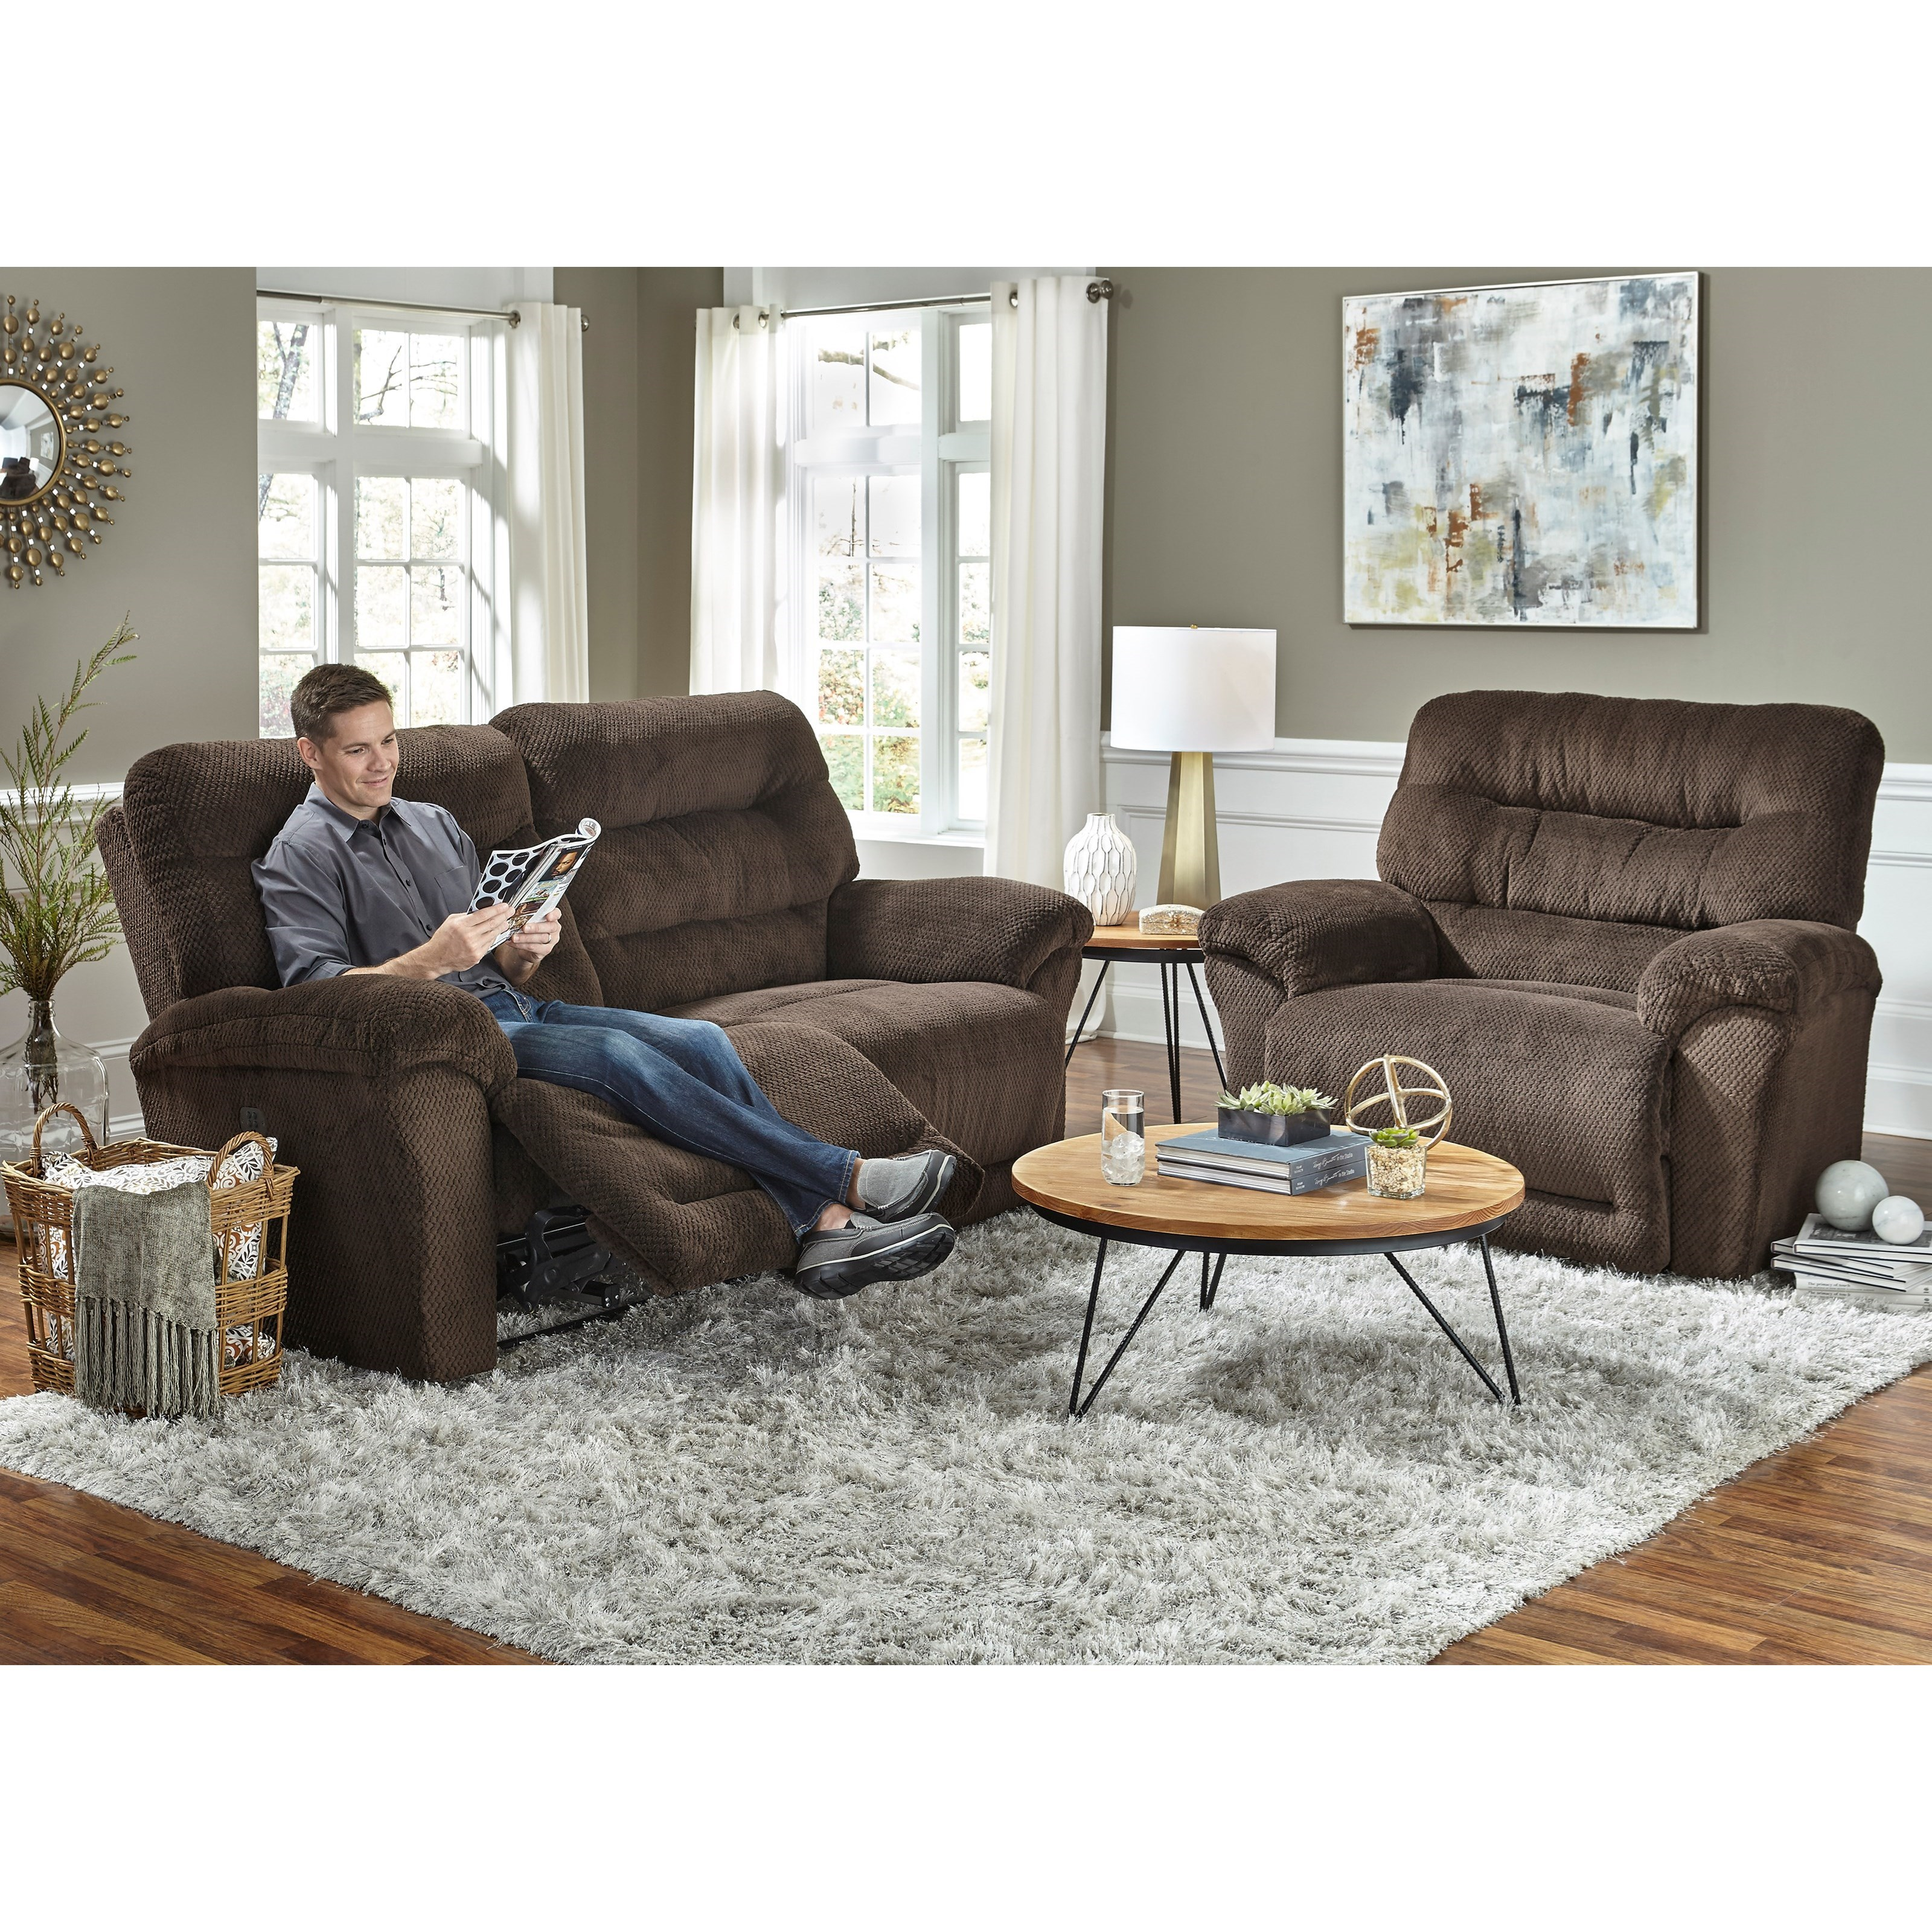 Best Home Furnishings Shelby Reclining Living Room Group Fashion Furniture Reclining Living